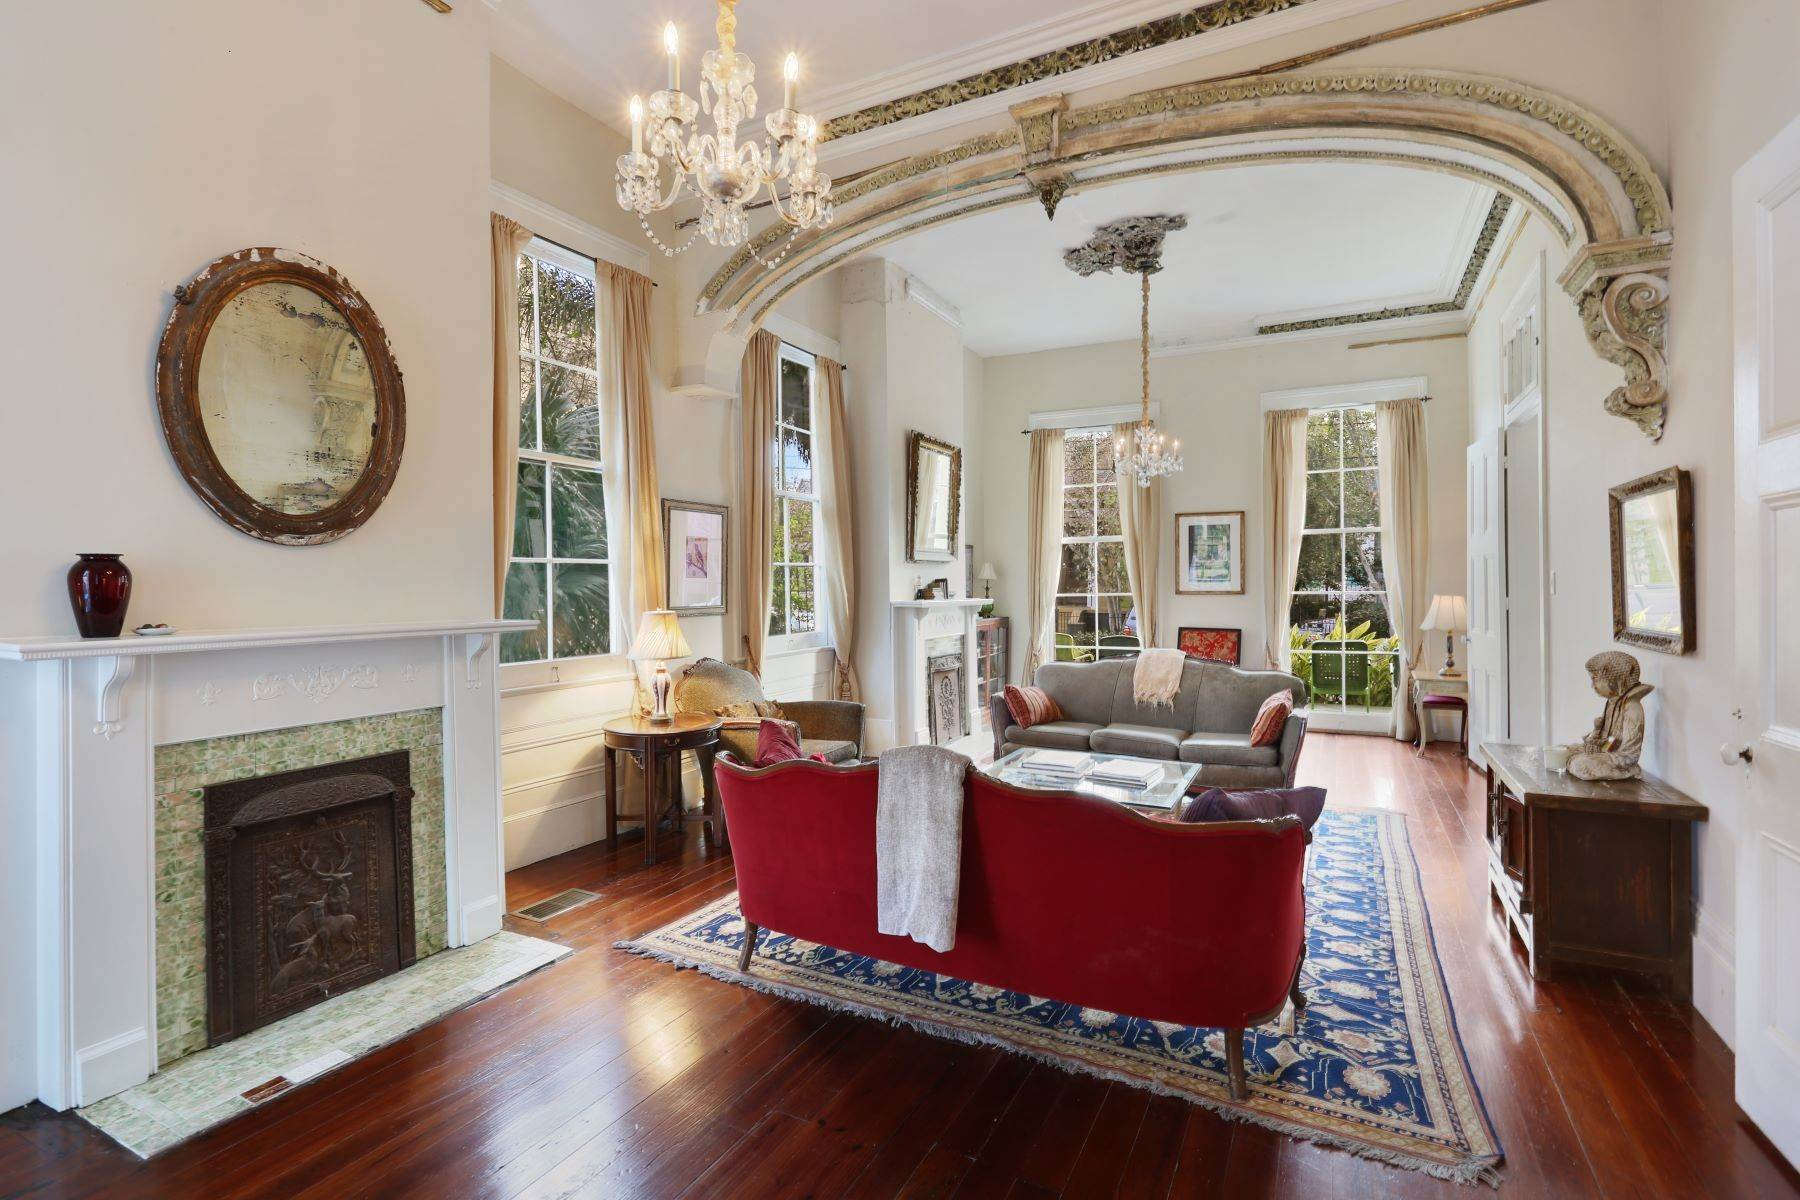 6. Single Family Homes for Sale at 2613 Royal New Orleans, Louisiana 70117 United States